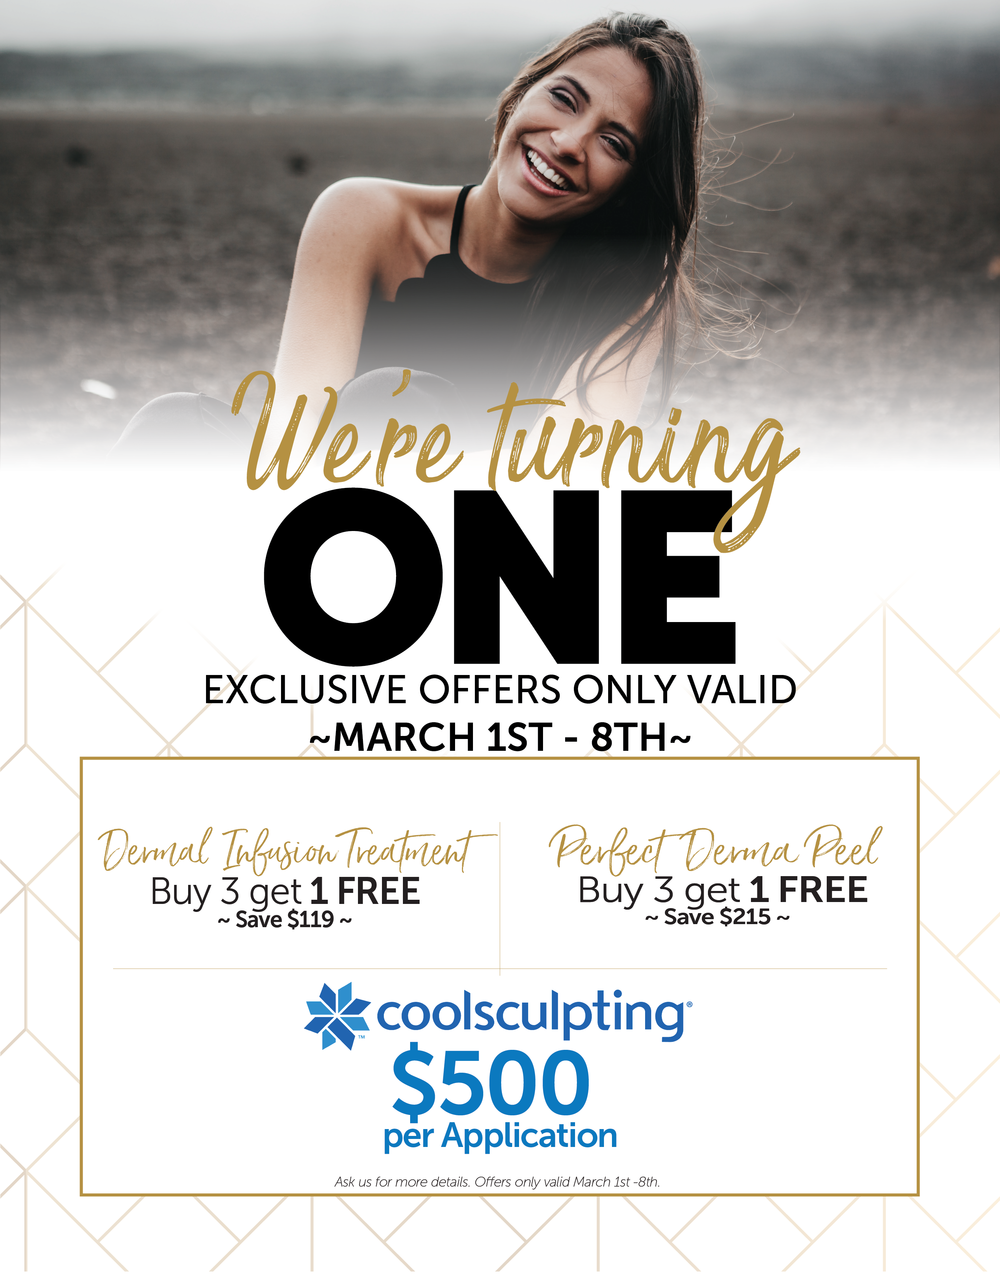 SA_ONE celebration_March1st-8th-01.png